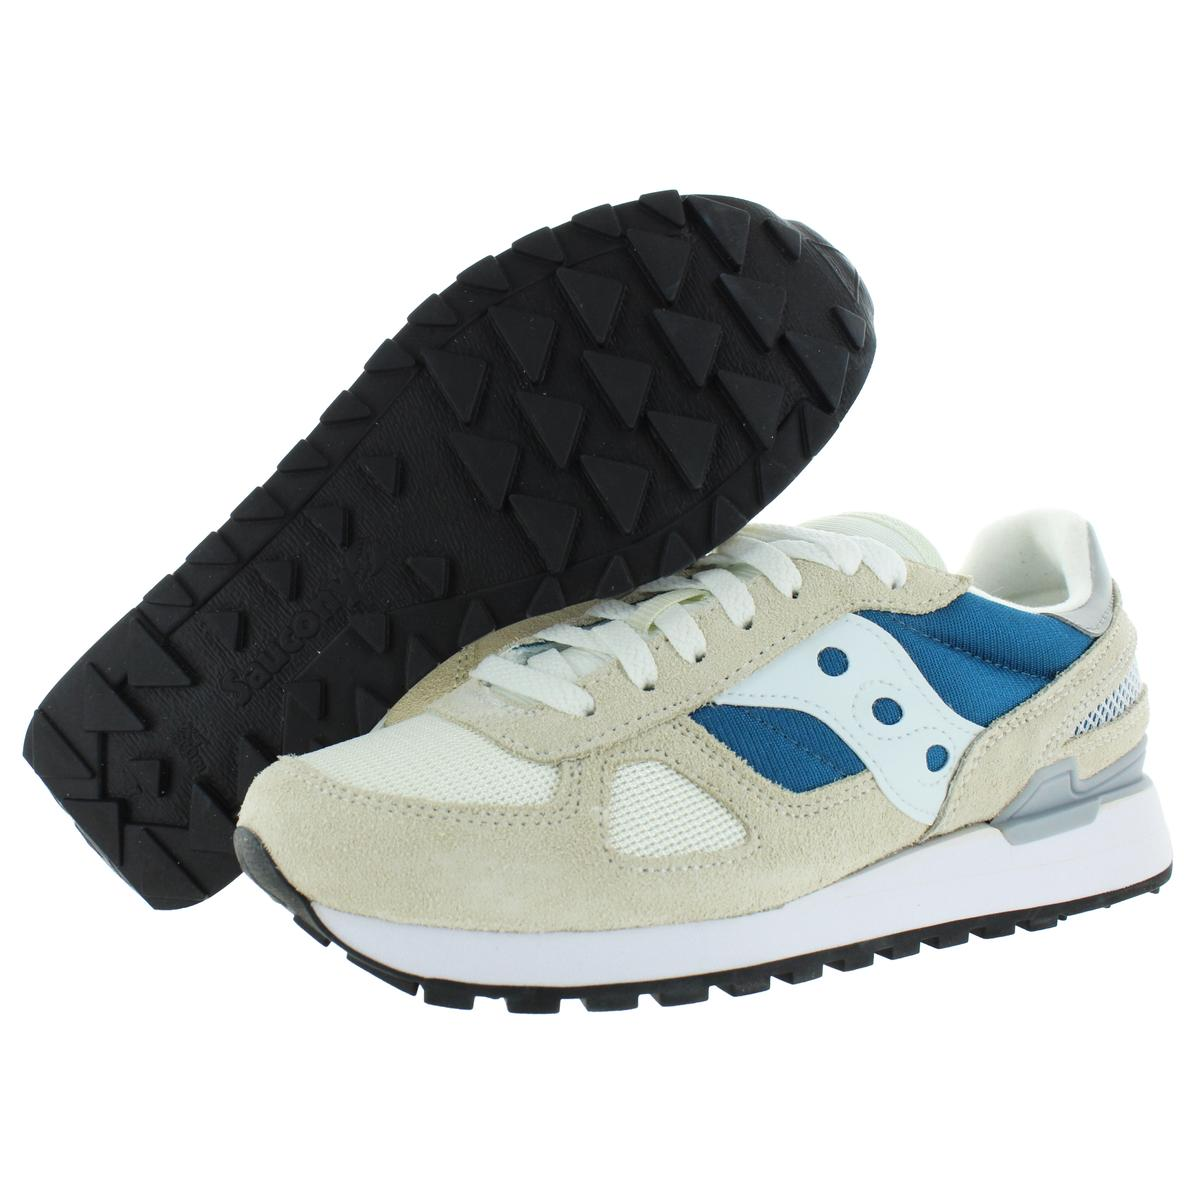 Saucony-Mens-Shadow-Original-Trainers-Suede-Comfort-Sneakers-Shoes-BHFO-0431 miniatuur 11